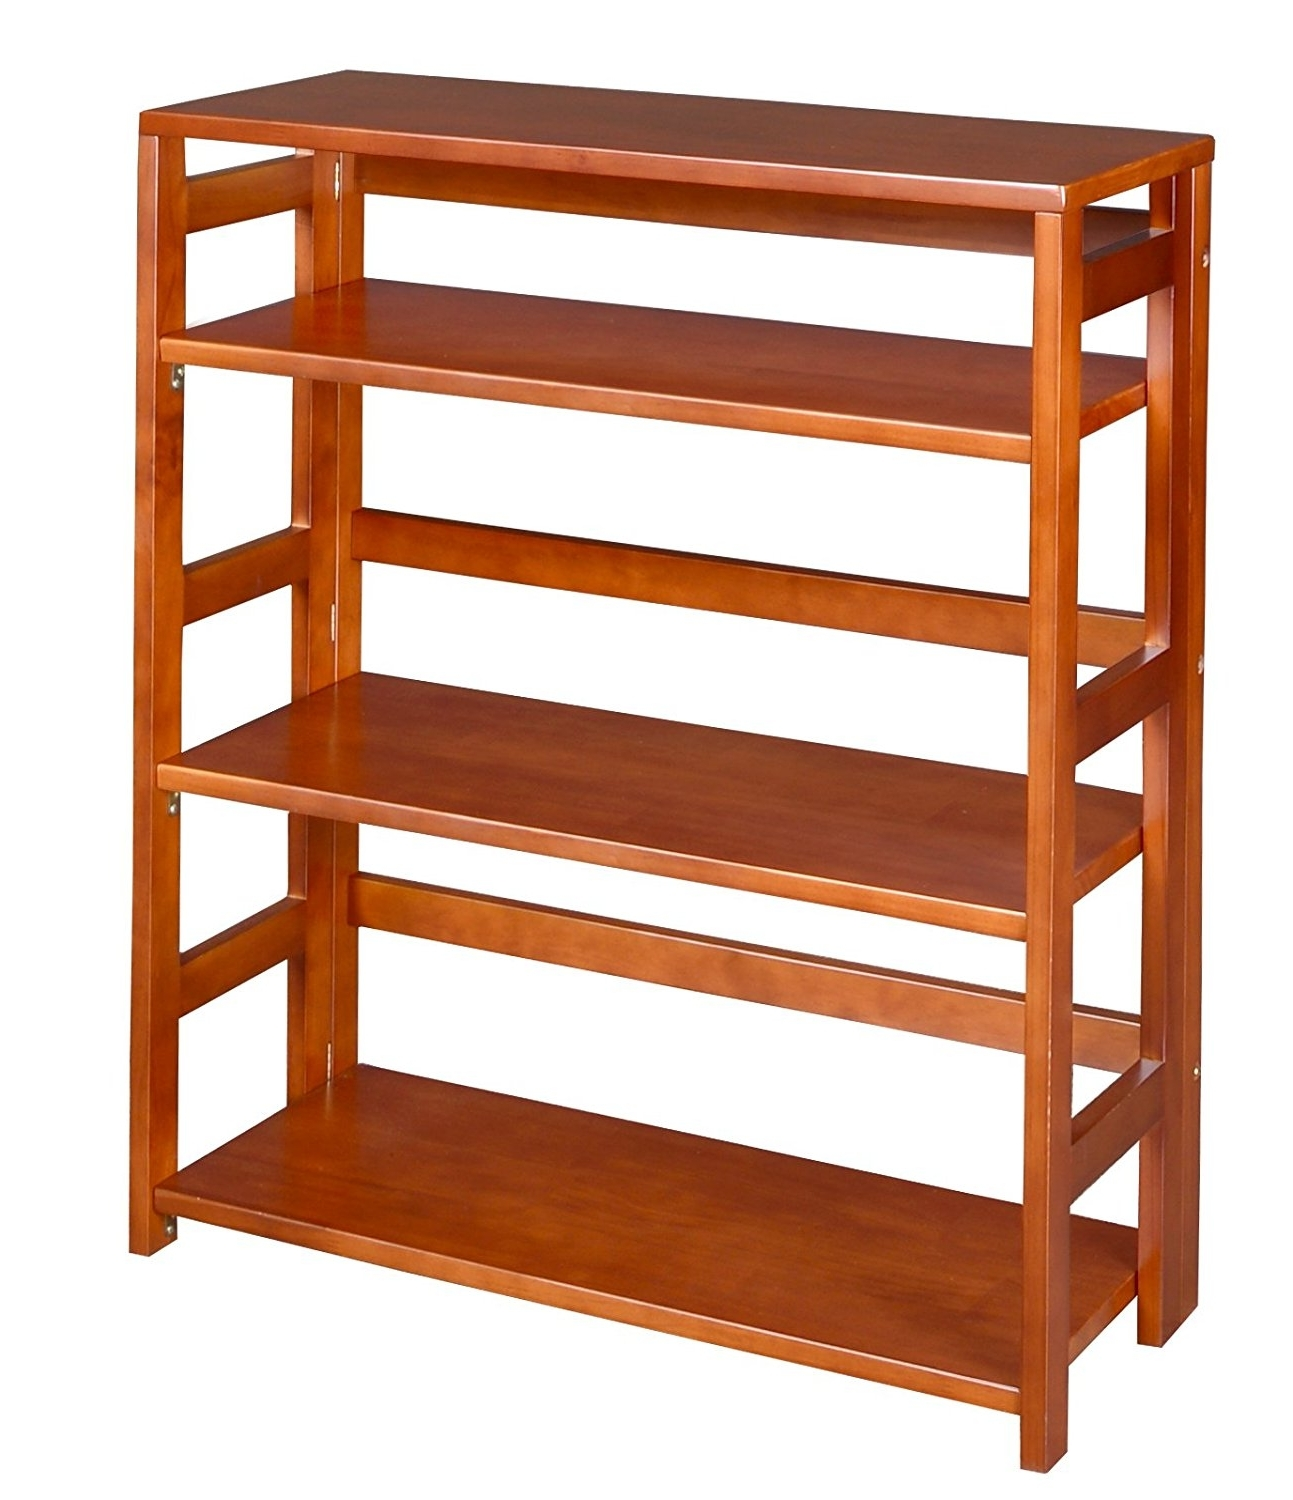 Most Recent Amazon: Regency Flip Flop 34 Inch High Folding Bookcase In 36 Inch Wide Bookcases (View 3 of 15)